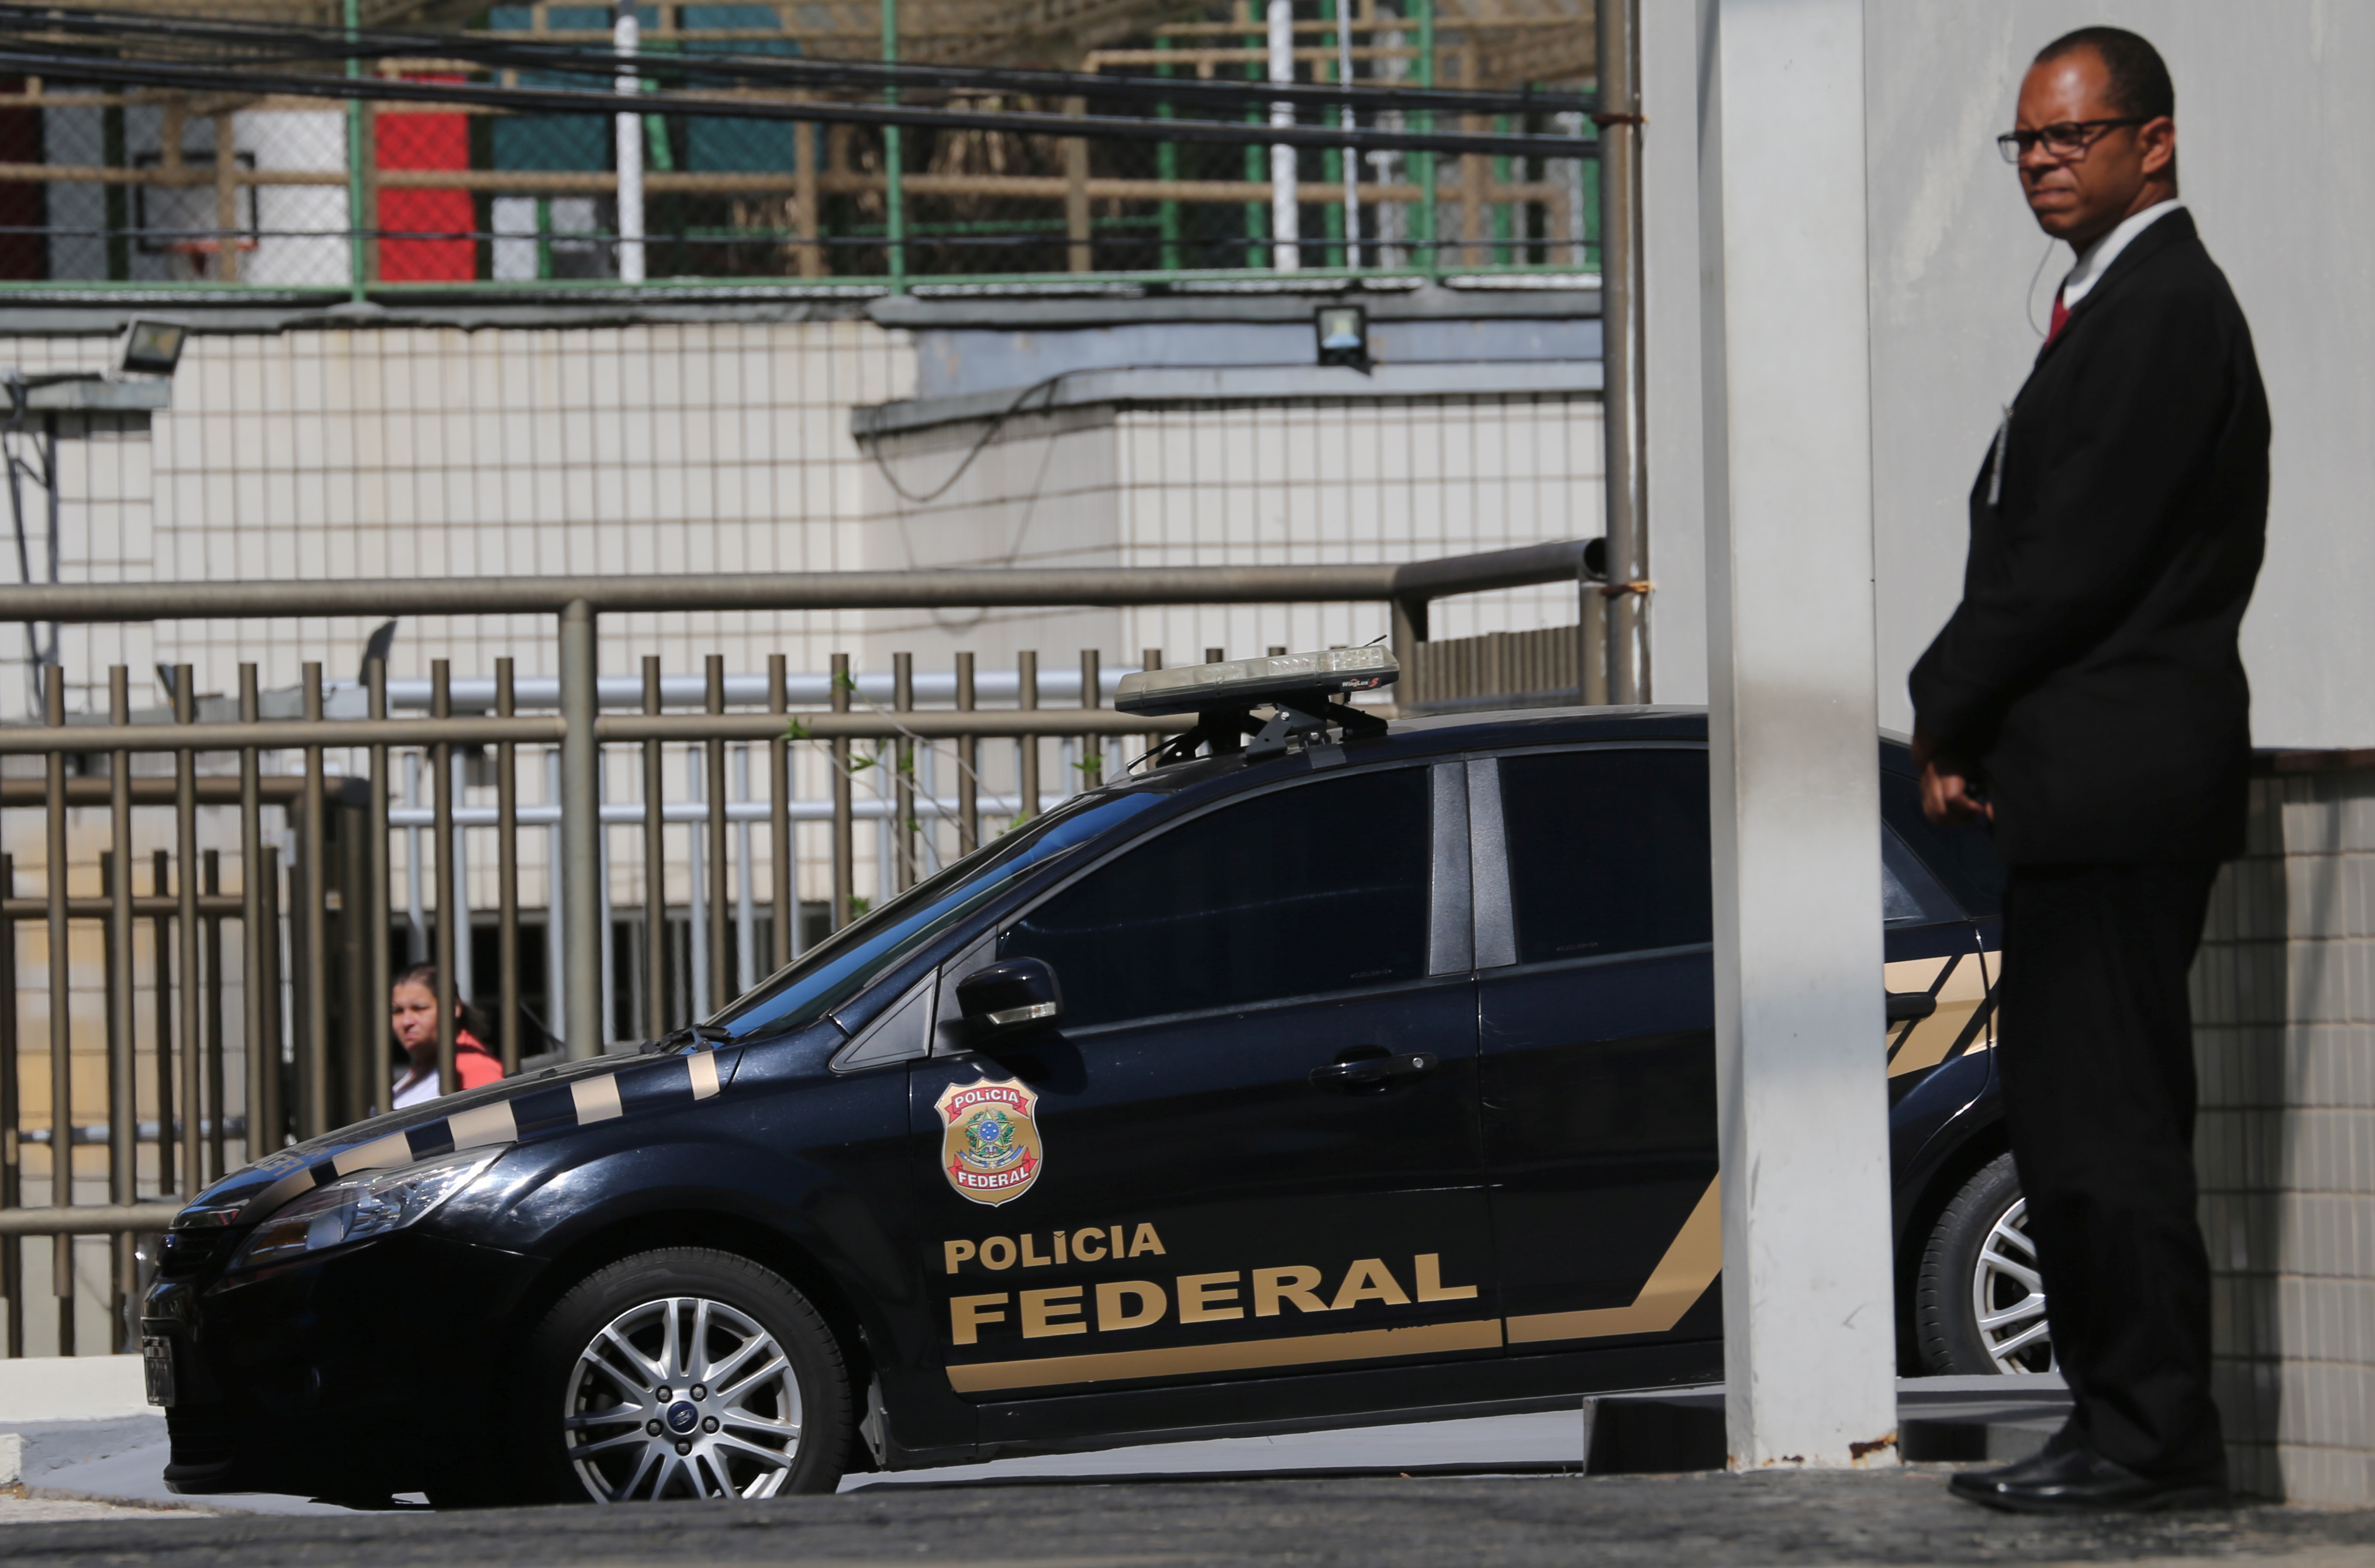 A Federal Police car is seen next to the headquarter of the Brazilian Olympic Committee in Rio de Janeiro, Brazil on Sept. 5, 2017. (REUTERS/Sergio Moraes)